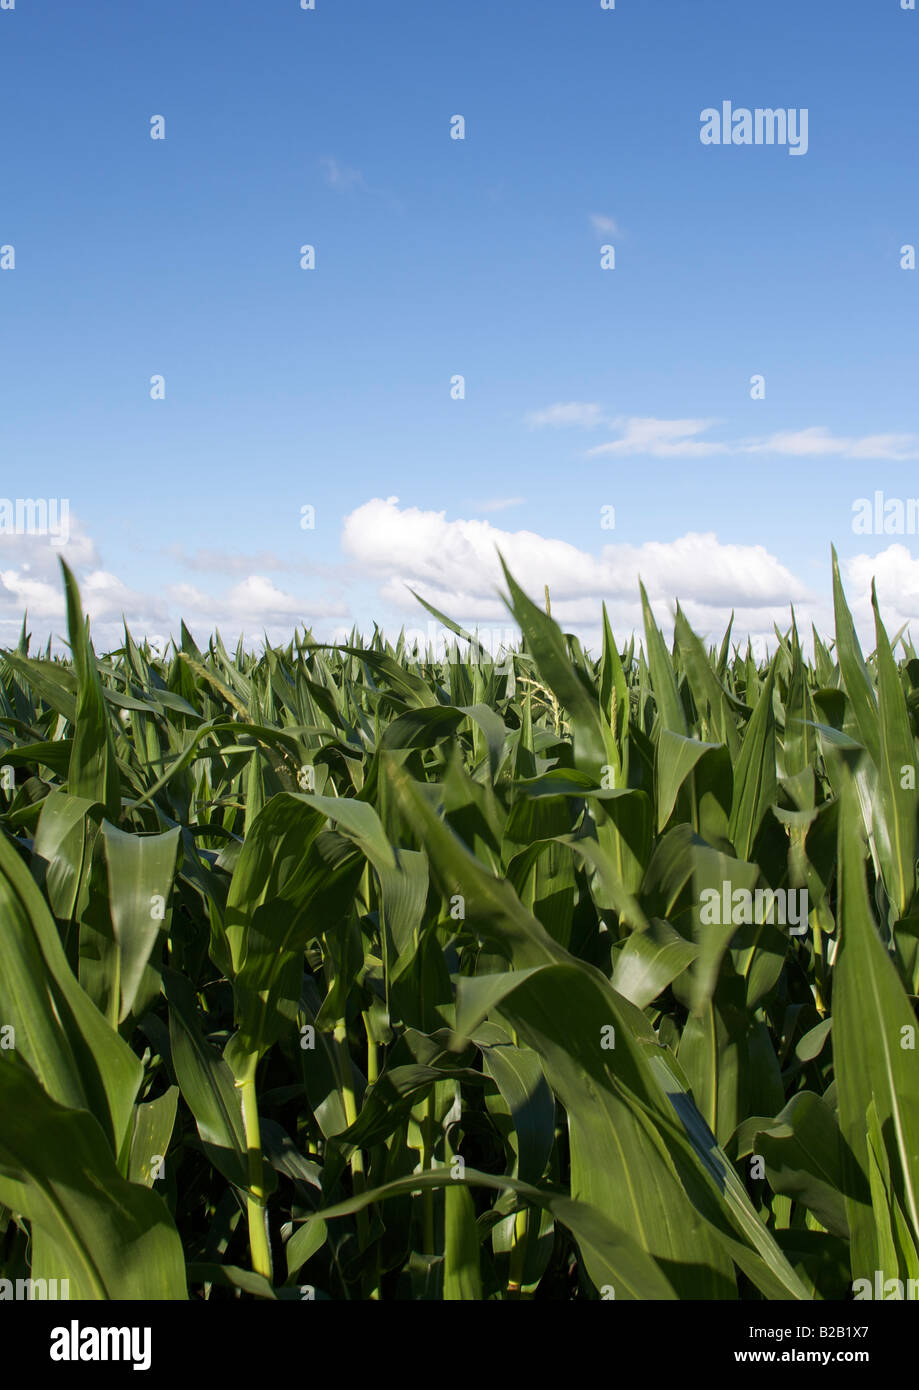 Field of young maize plants against blue sky - Stock Image